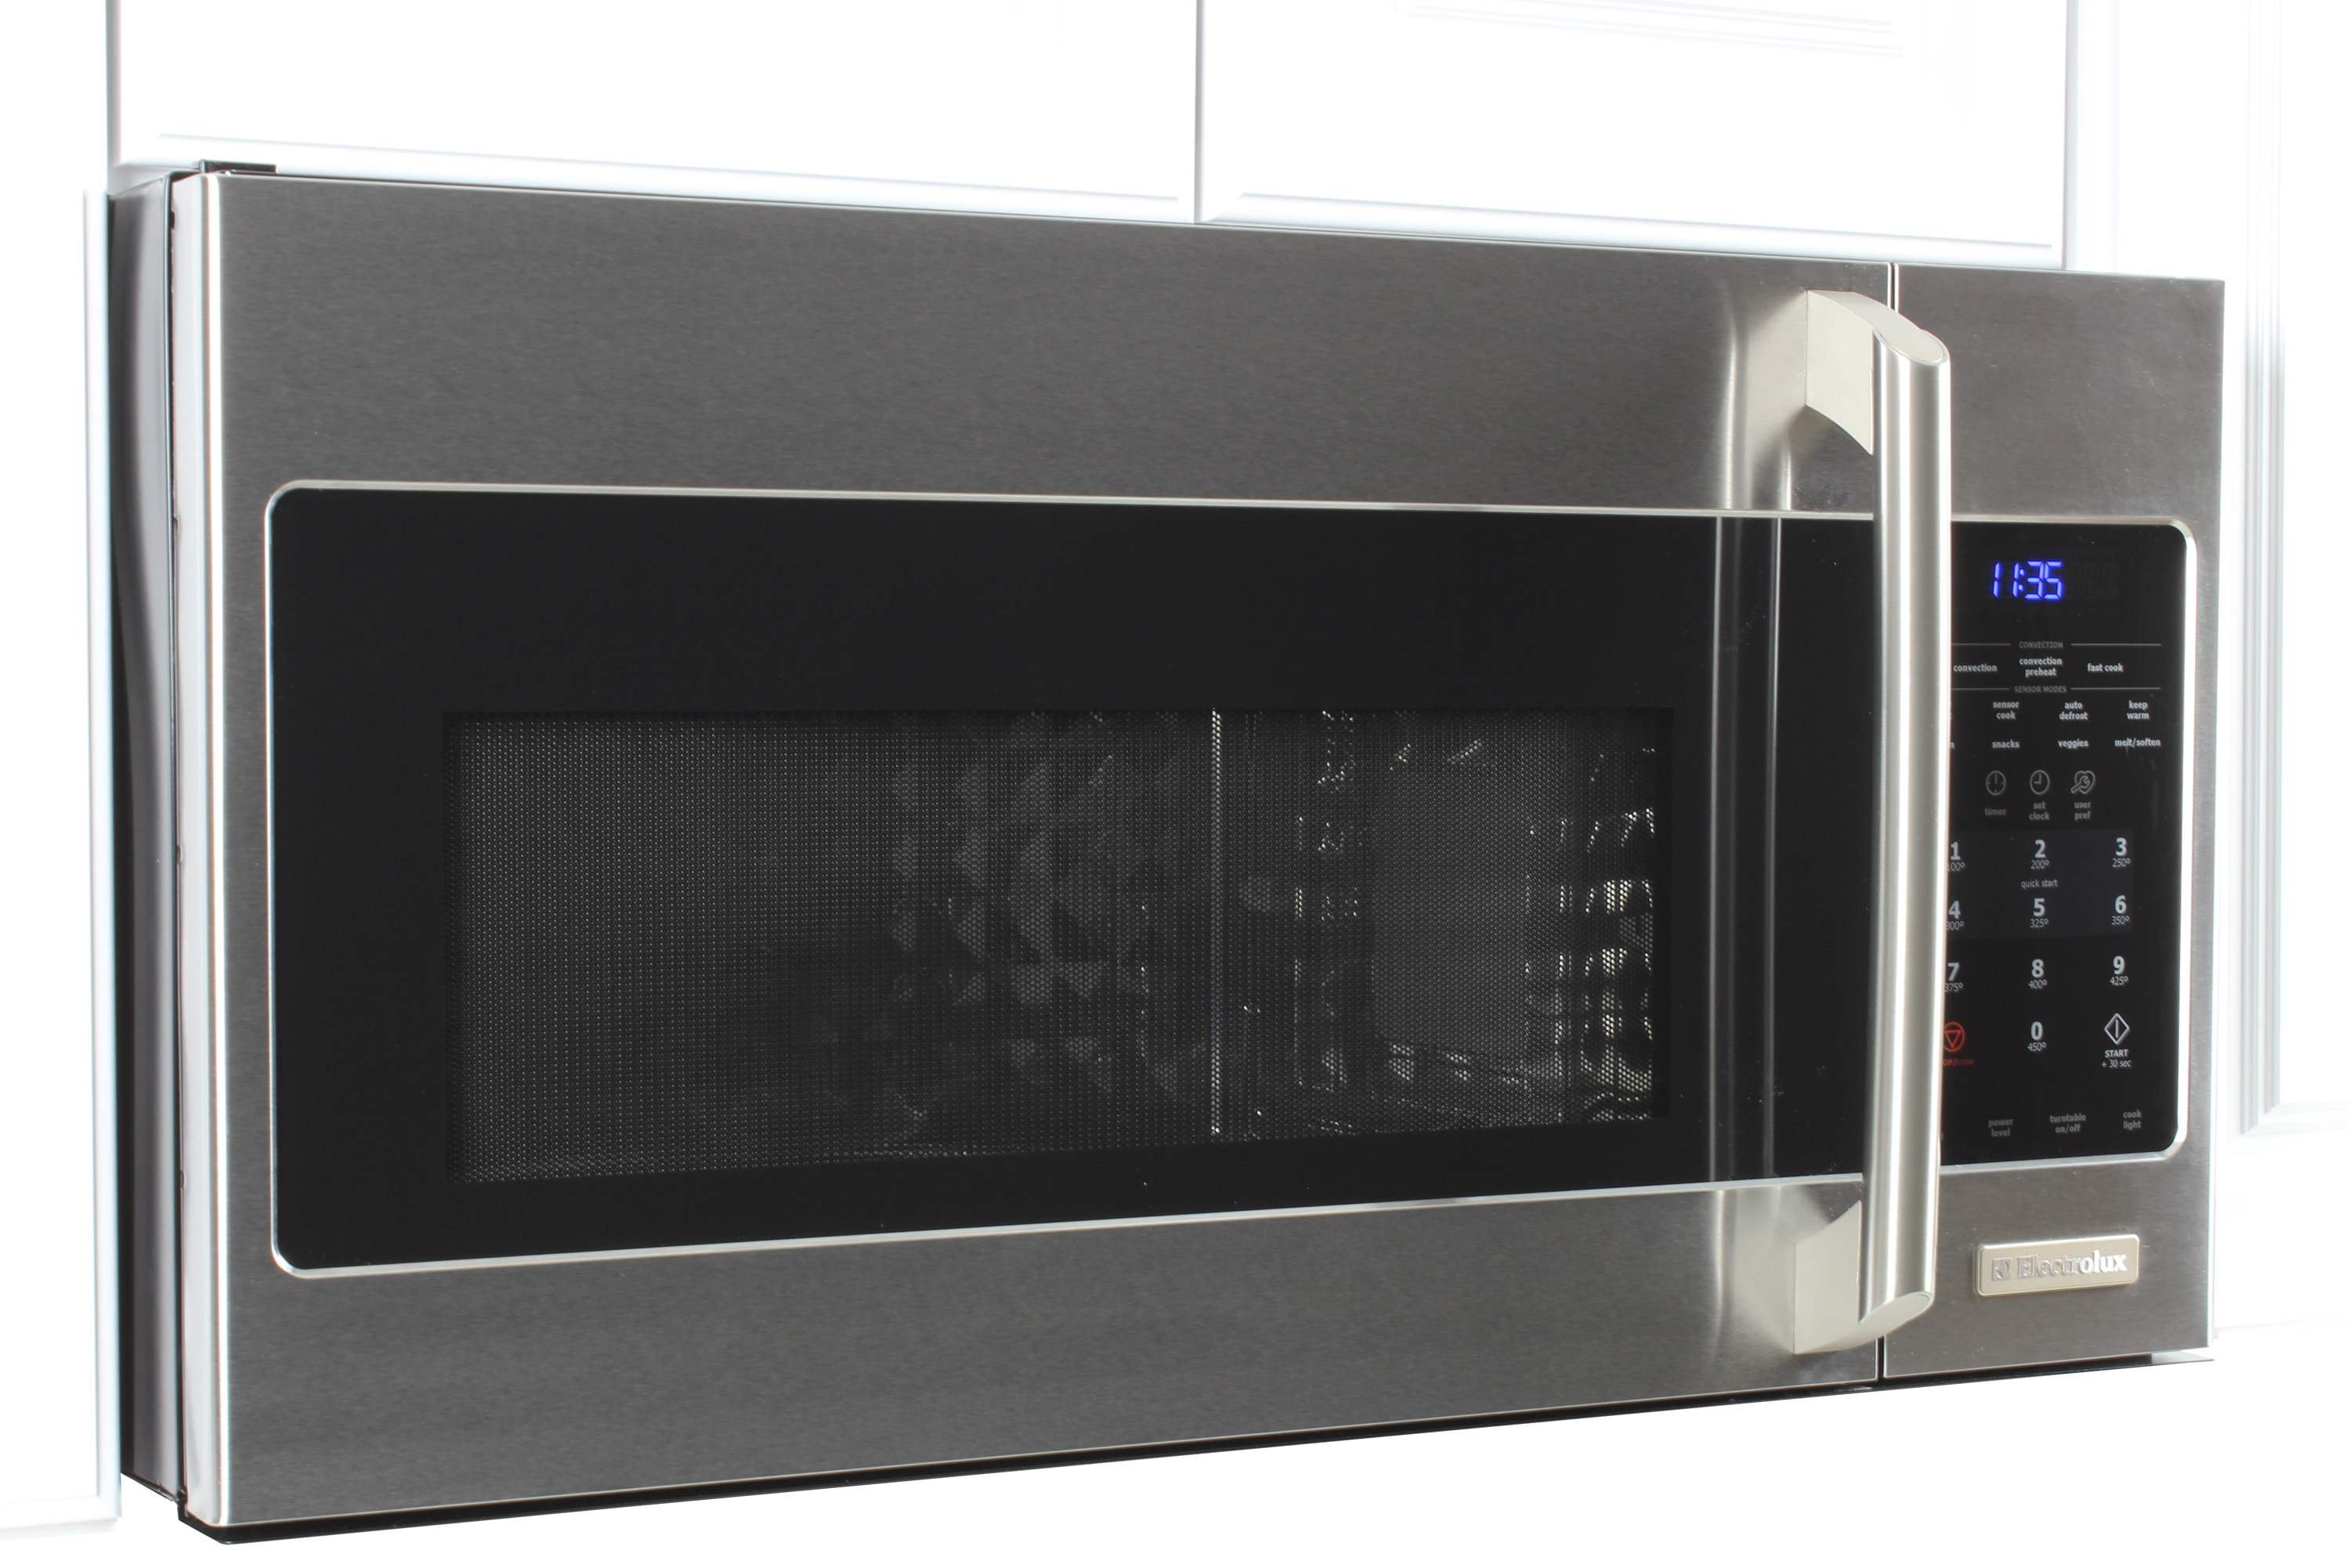 Electrolux EI30SM35QS Over-the-Range Microwave Review - Reviewed.com ...